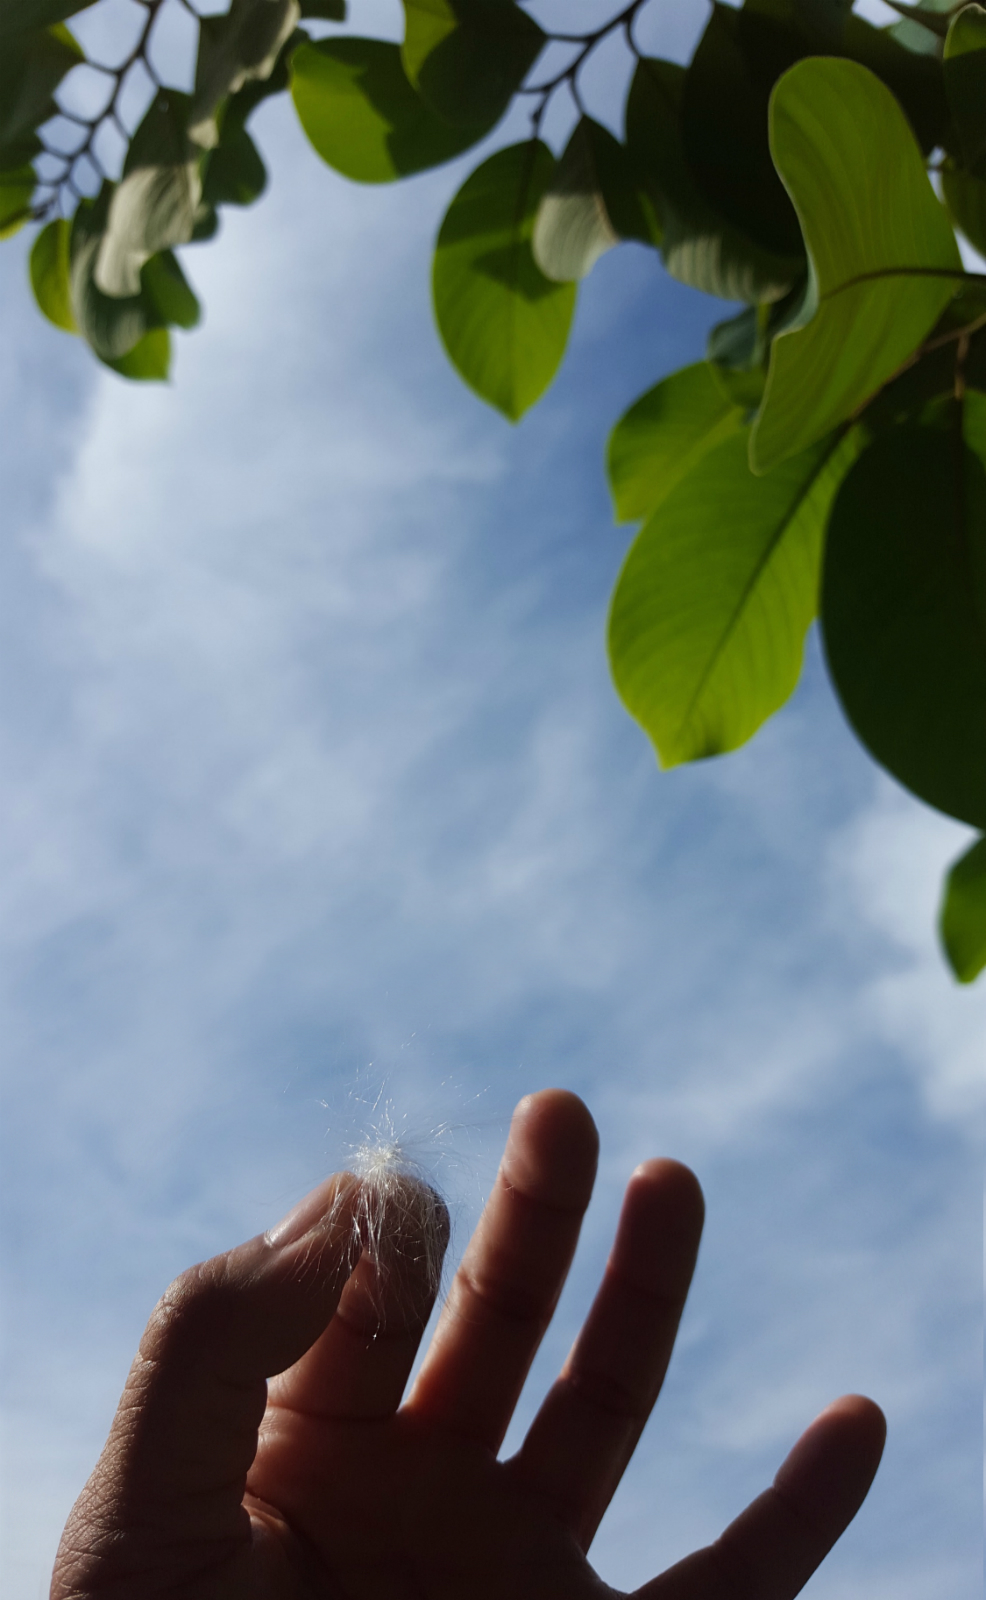 making a wish under grandmother's soursop tree